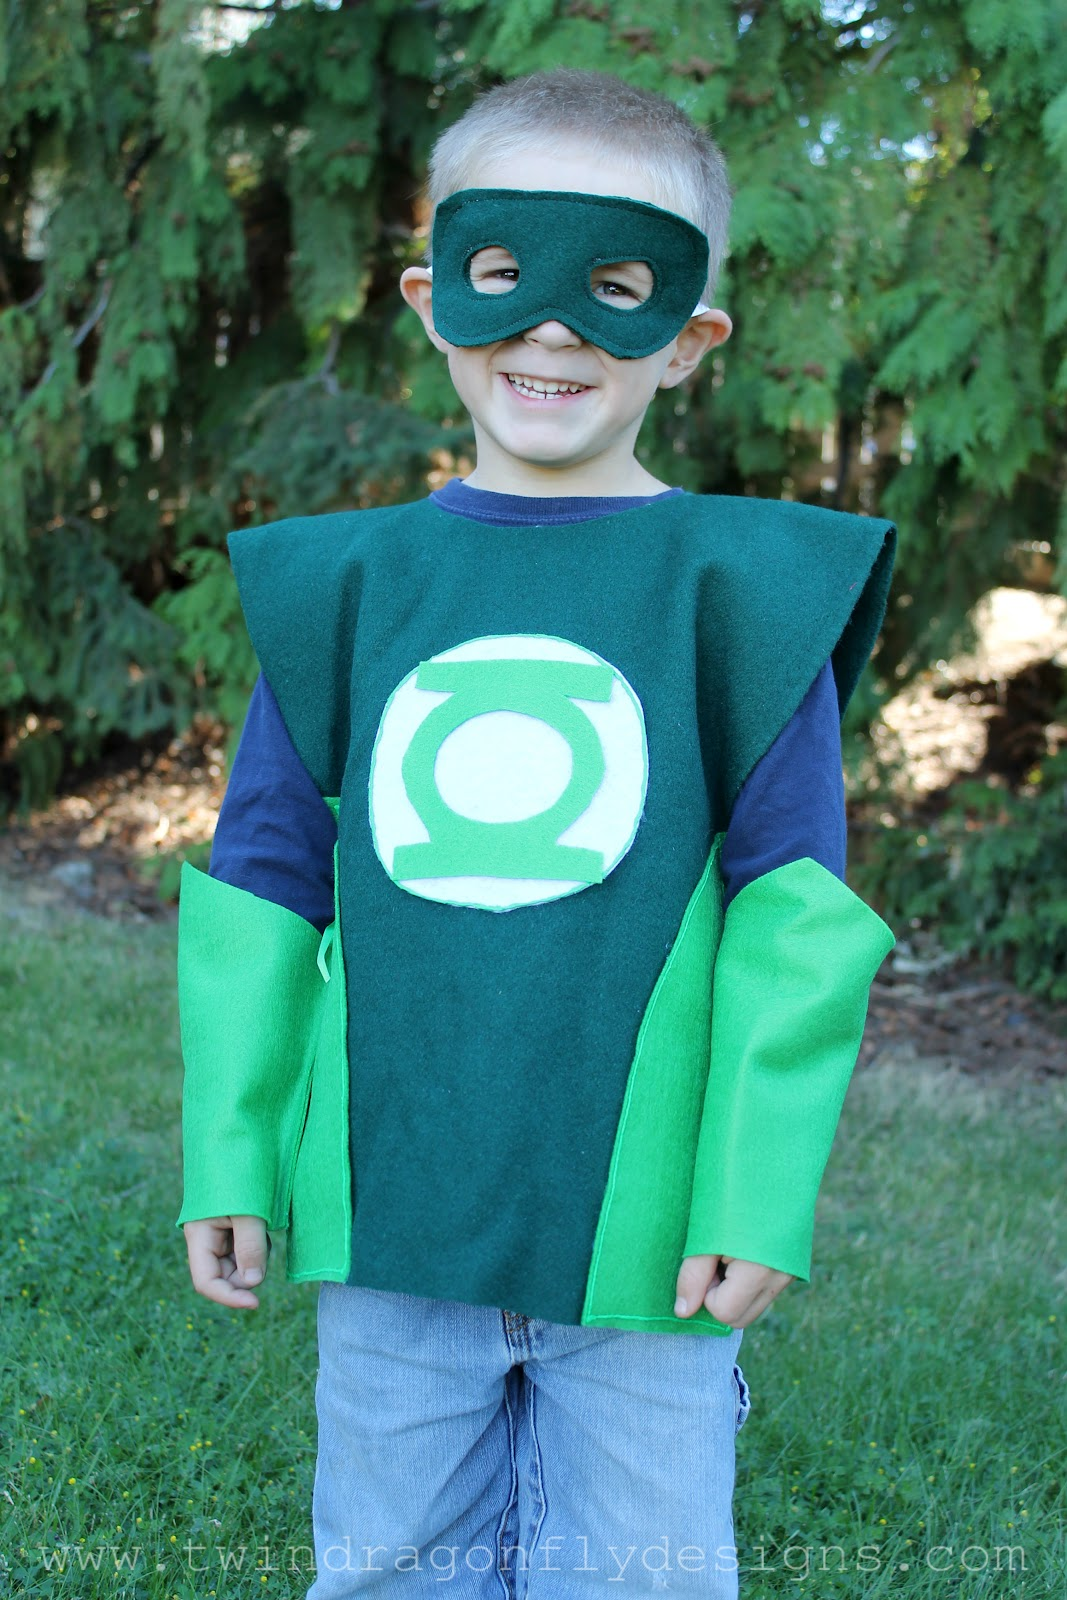 Green Lantern & No Sew SUPER HERO COSTUMES Tutorial » Dragonfly Designs